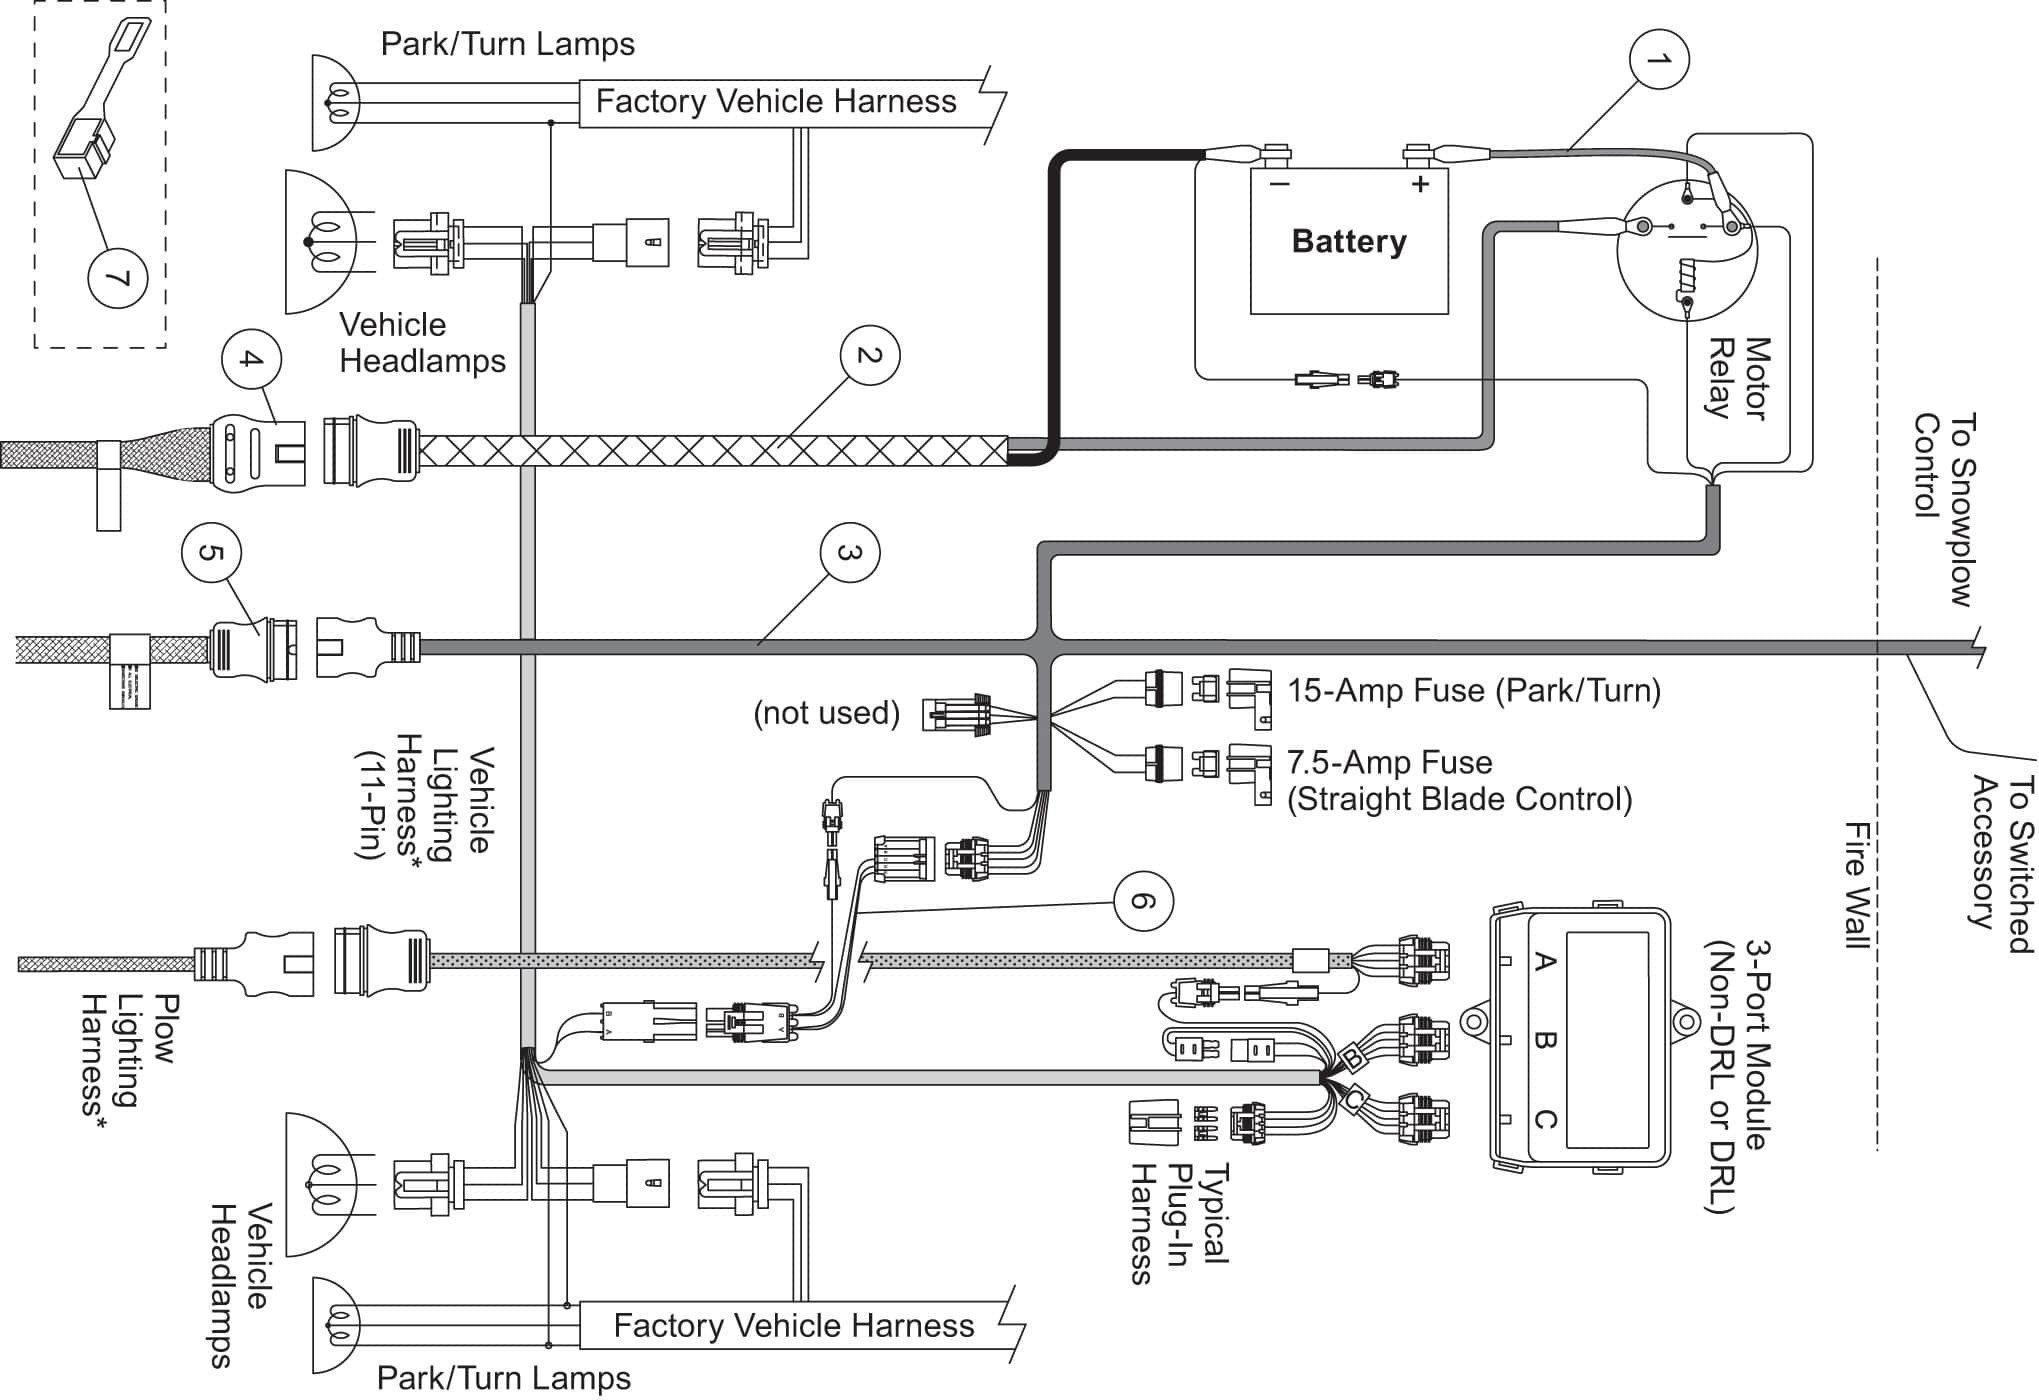 Meyer Snow Plow Wiring Diagram Snow Plow Wiring Diagrams Download Of Meyer Snow Plow Wiring Diagram Snow Plow Wiring Diagram Best Meyers Snow Plows Wiring Diagram